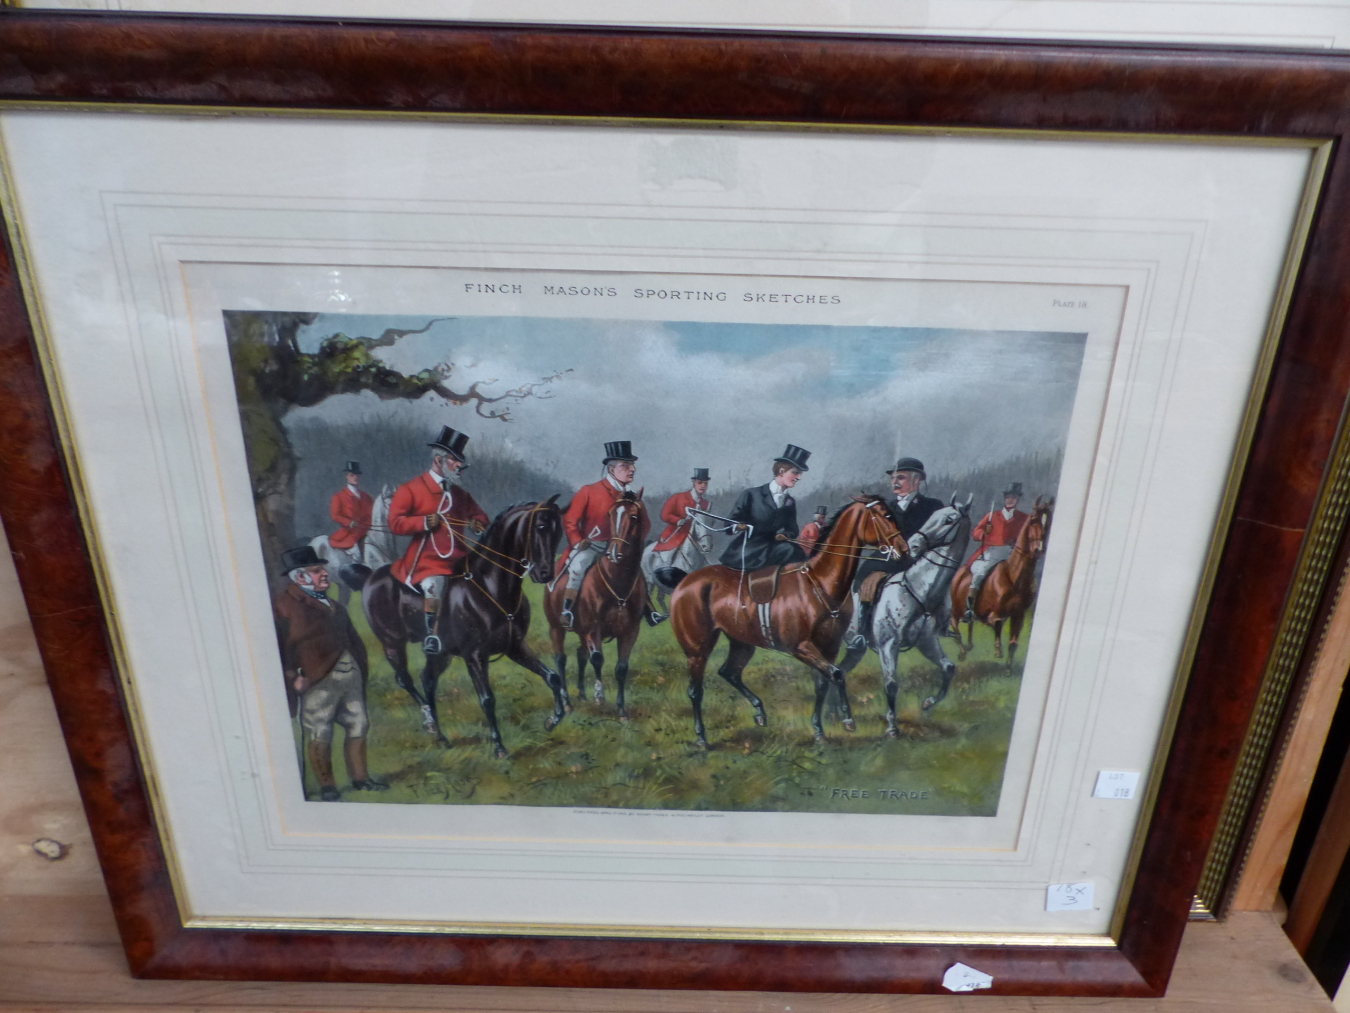 AFTER J.F. HERRING. A HAND COLOURED PRINT OF THE RACE HORSE ST. PATRICK. 37 x 44cms TOGETHER WITH - Image 4 of 4